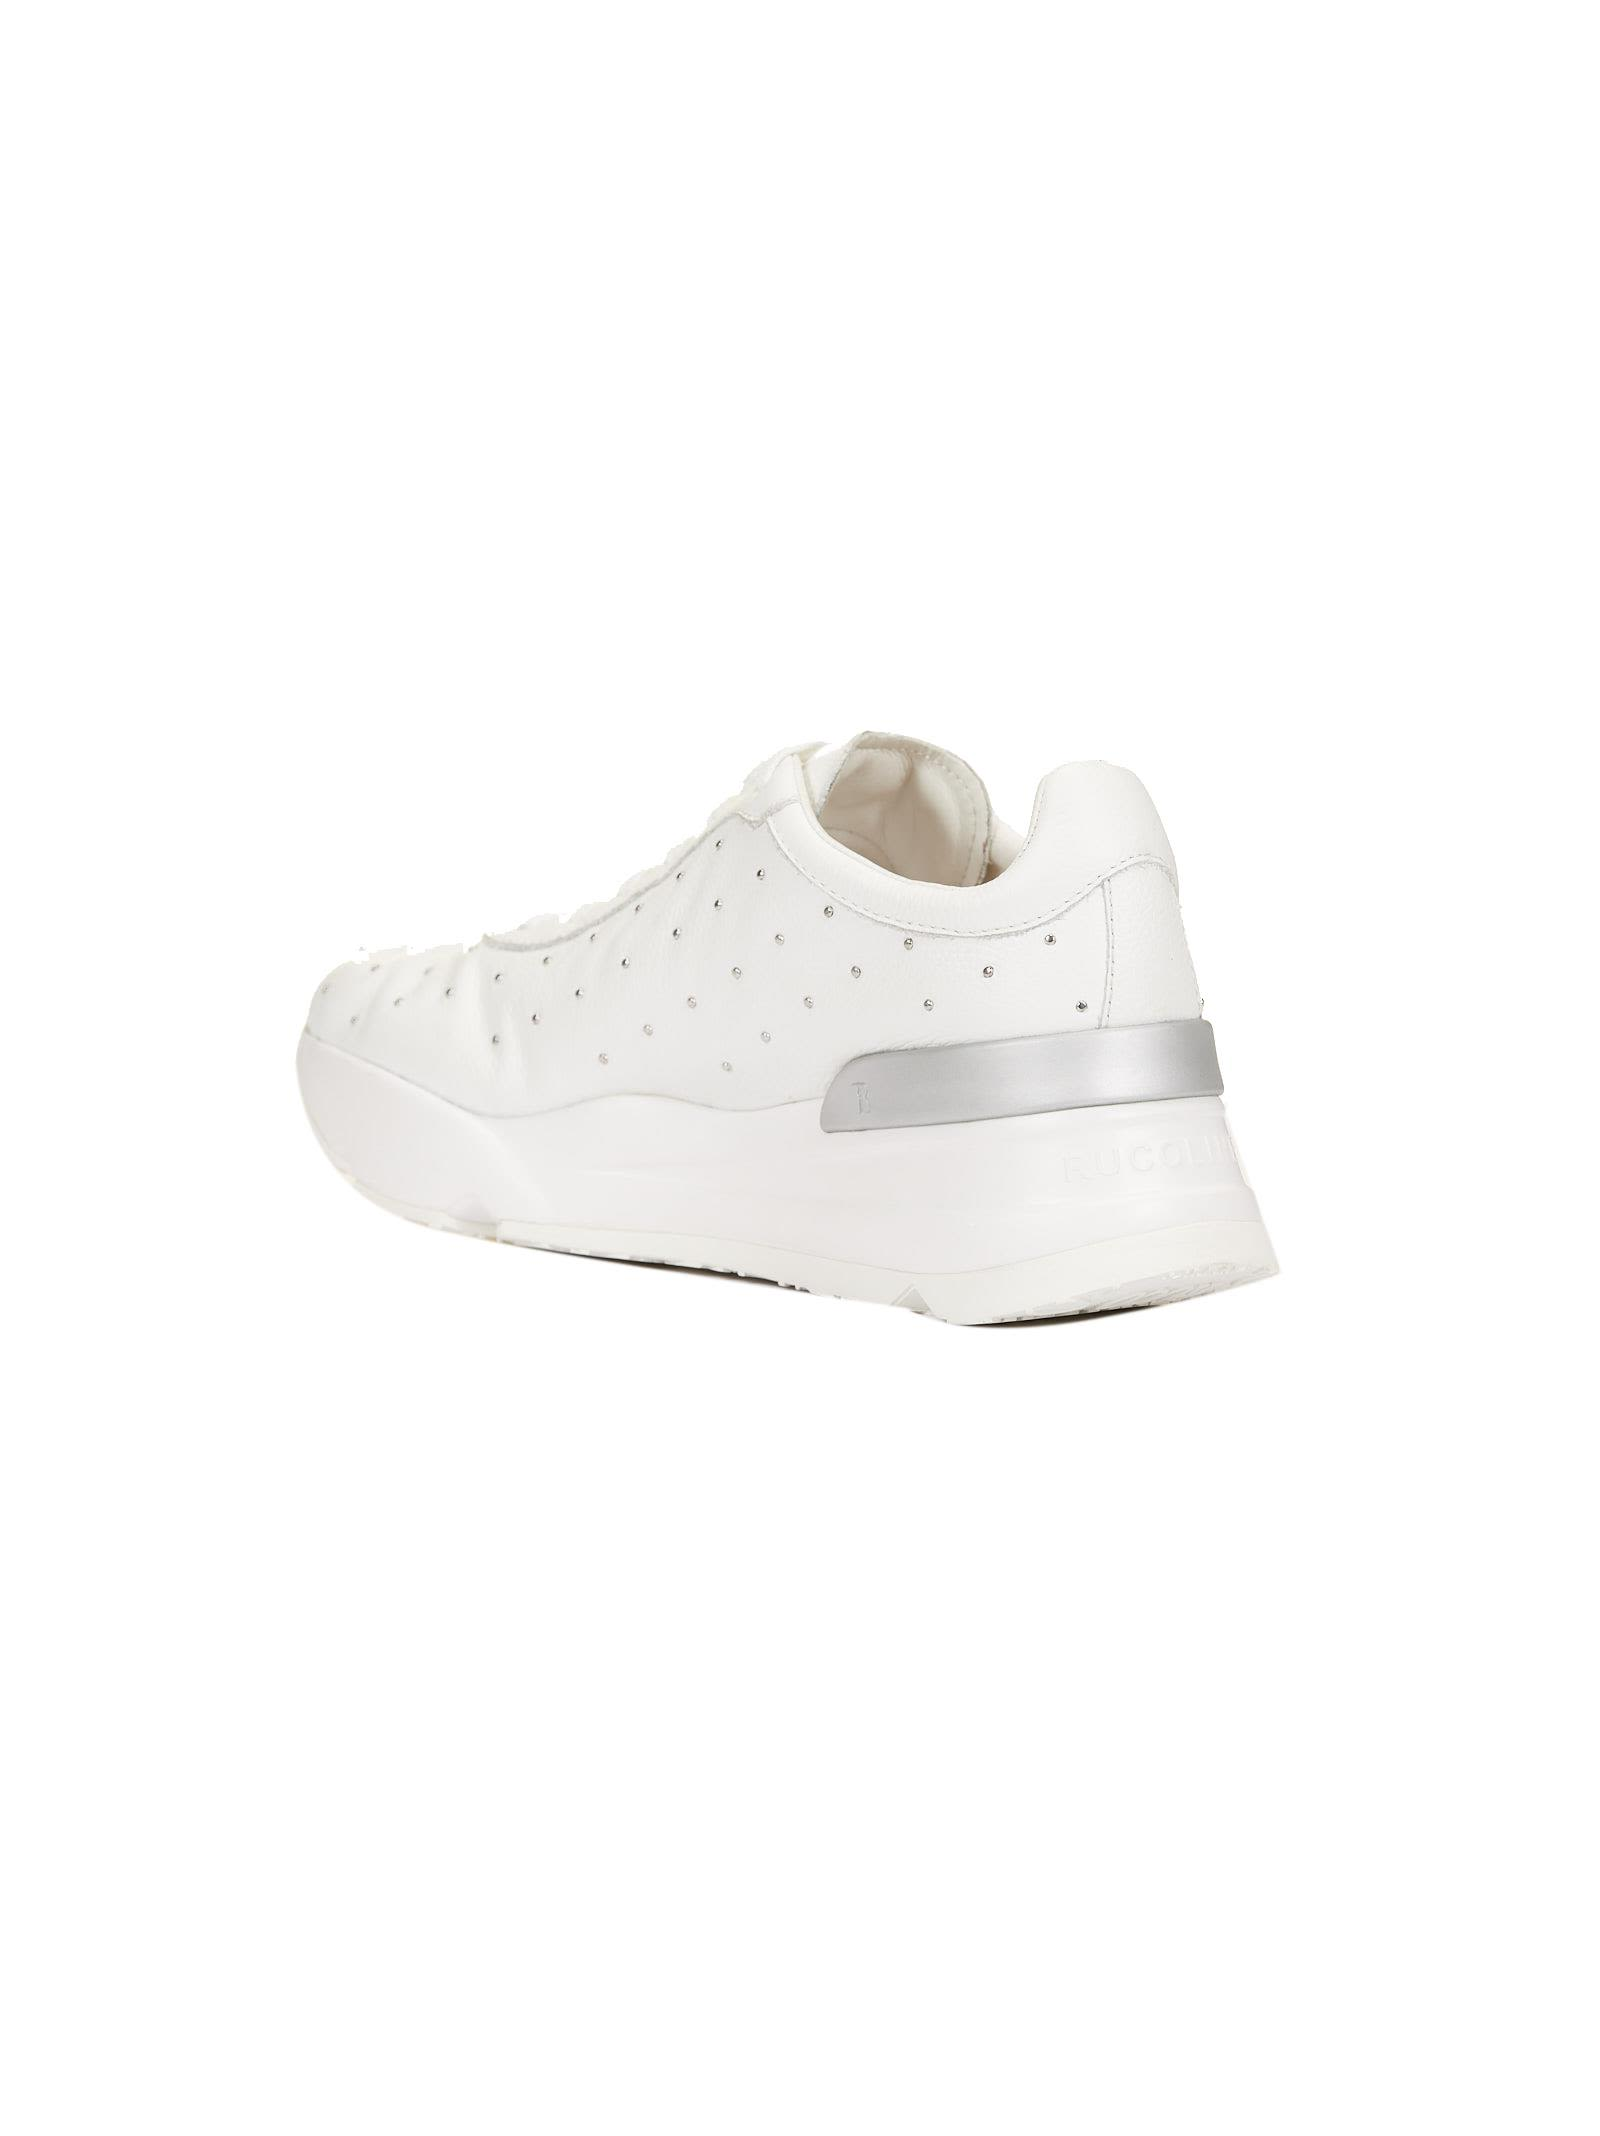 Footaction For Sale Cheap Sale Cost logo platform sneakers - White Ruco Line Purchase Many Kinds Of Sale Online Free Shipping Shop Offer 36oXnFYIP